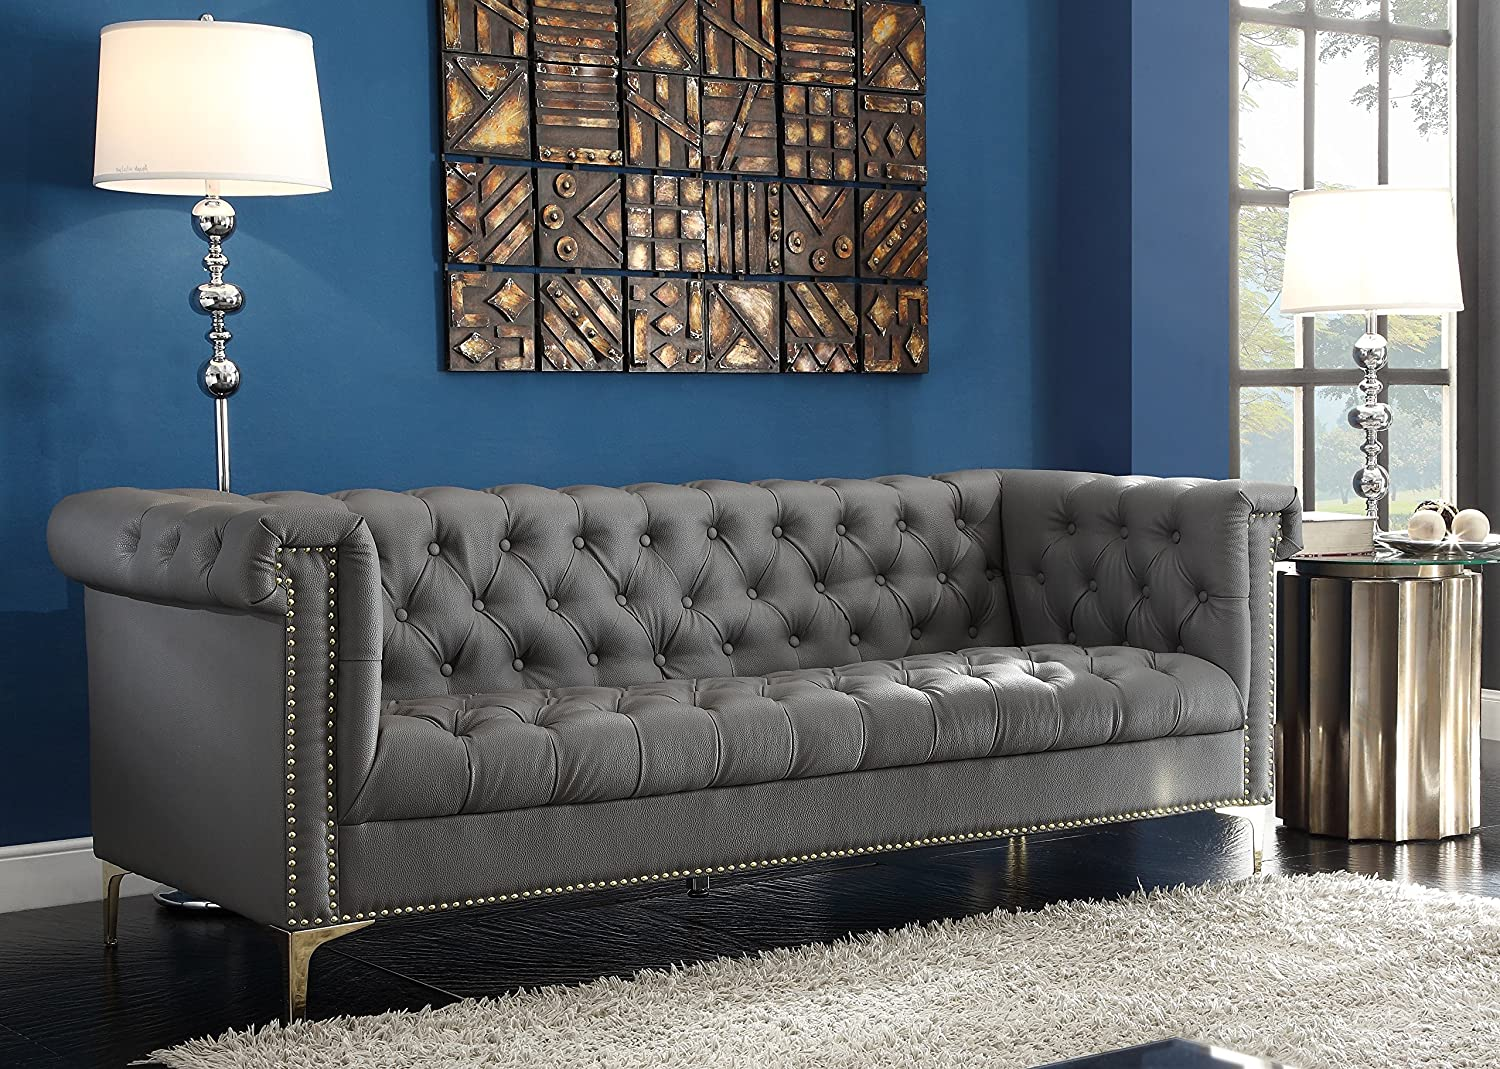 Iconic Home Winston Modern Tufted Gold Nail Head Trim Grey PU Leather Sofa with Gold Tone Metal Y-Legs